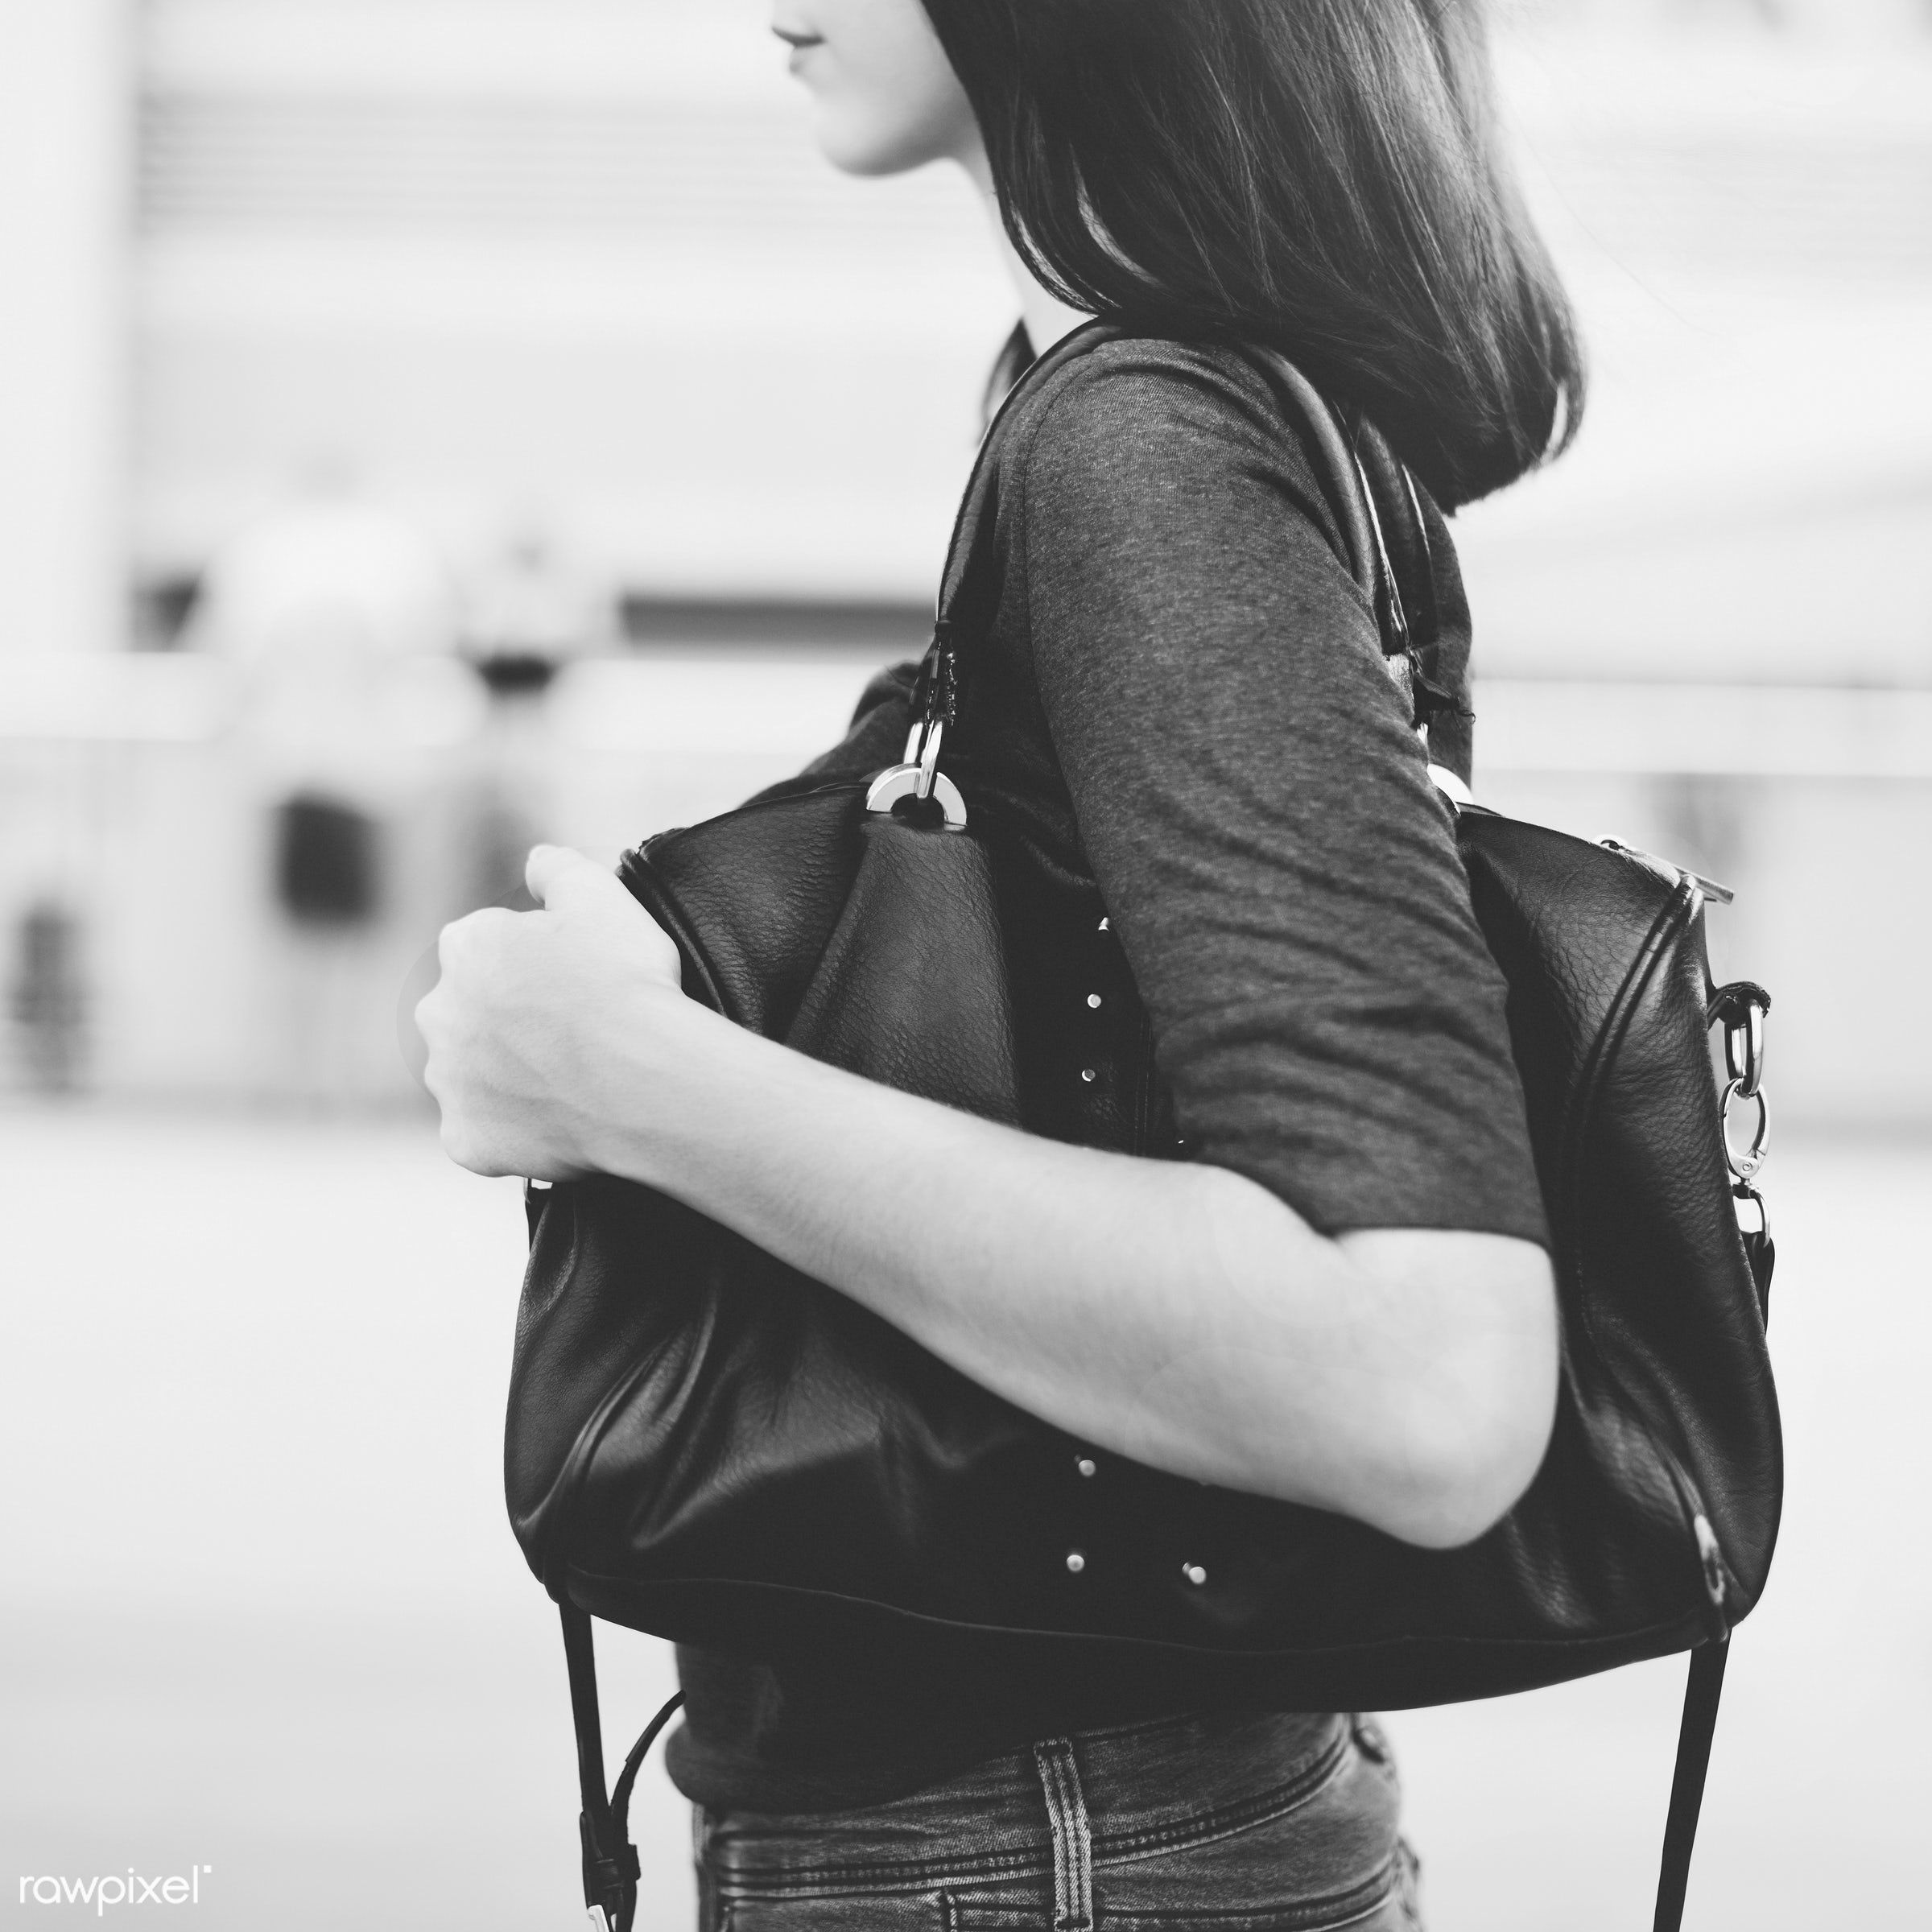 lifestyles, activity, adult, bag, casual, chilling, city, city life, cityscape, commuter, commuting, connection, crowd,...